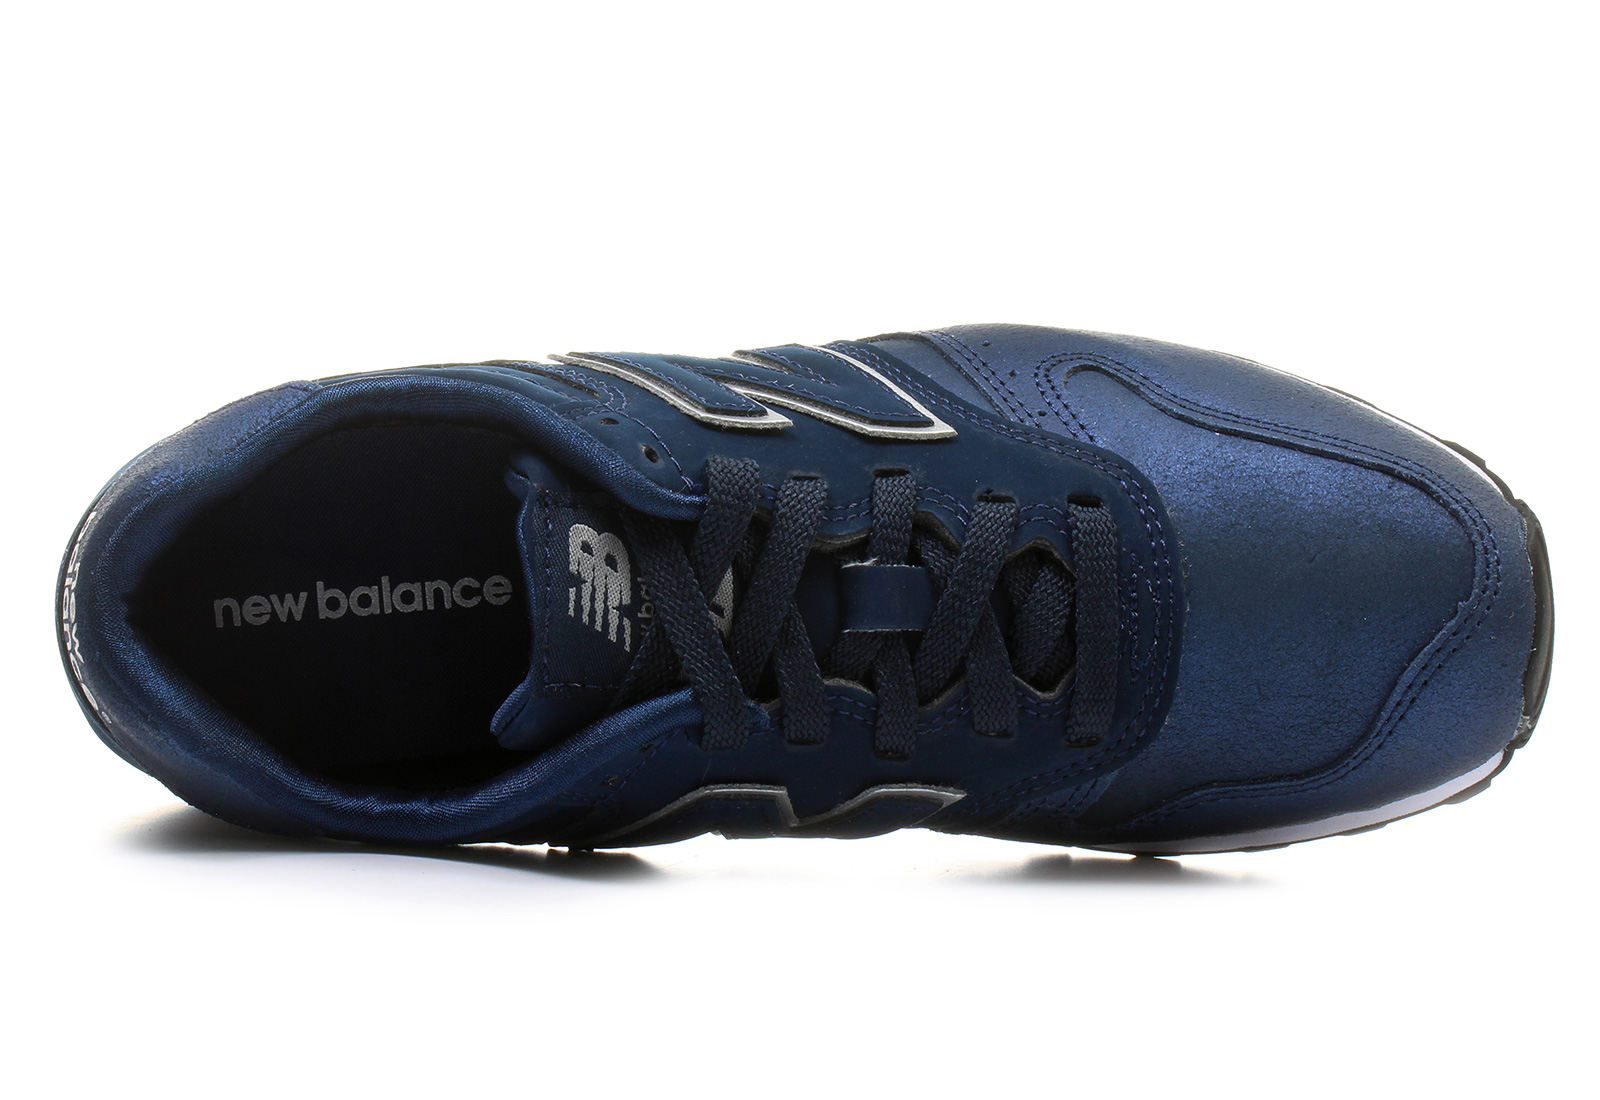 New Balance Shoes W373 2